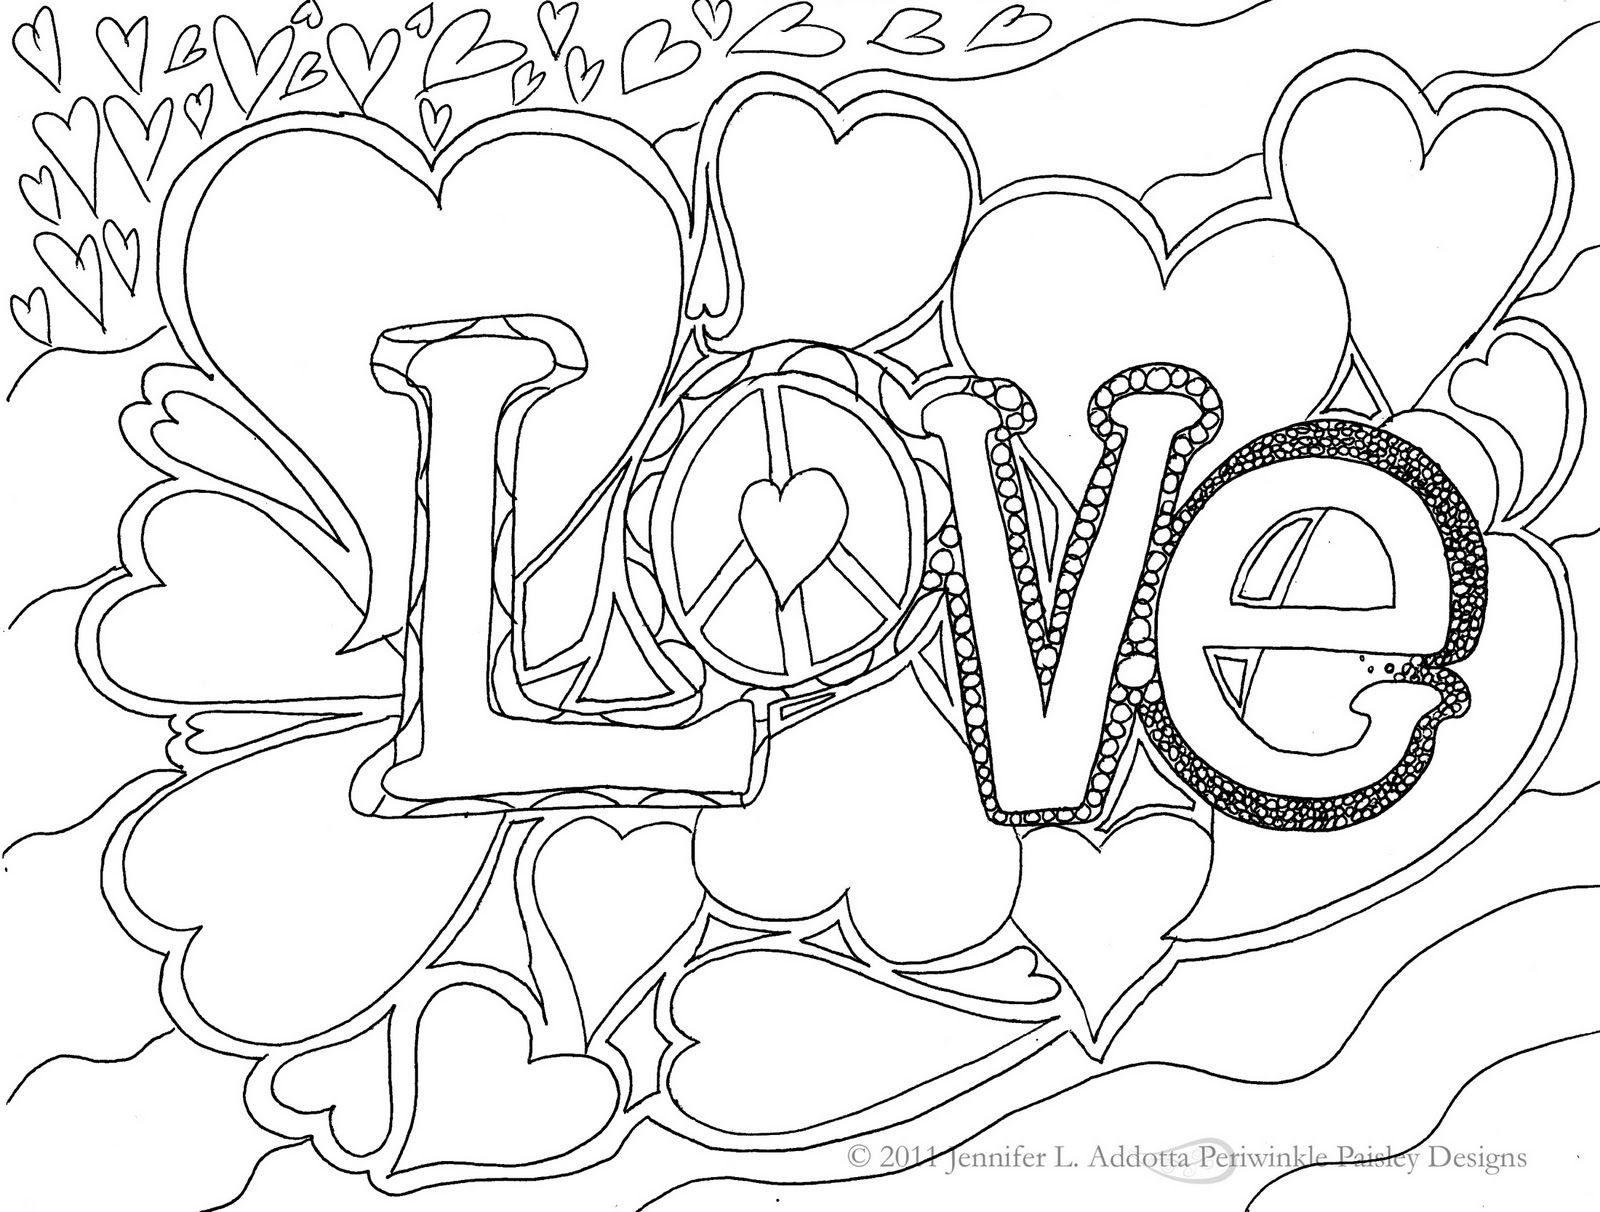 Coloring Pages I Love You Boyfriend Printable Valentine Coloring Pages Love Coloring Pages Mandala Coloring Pages